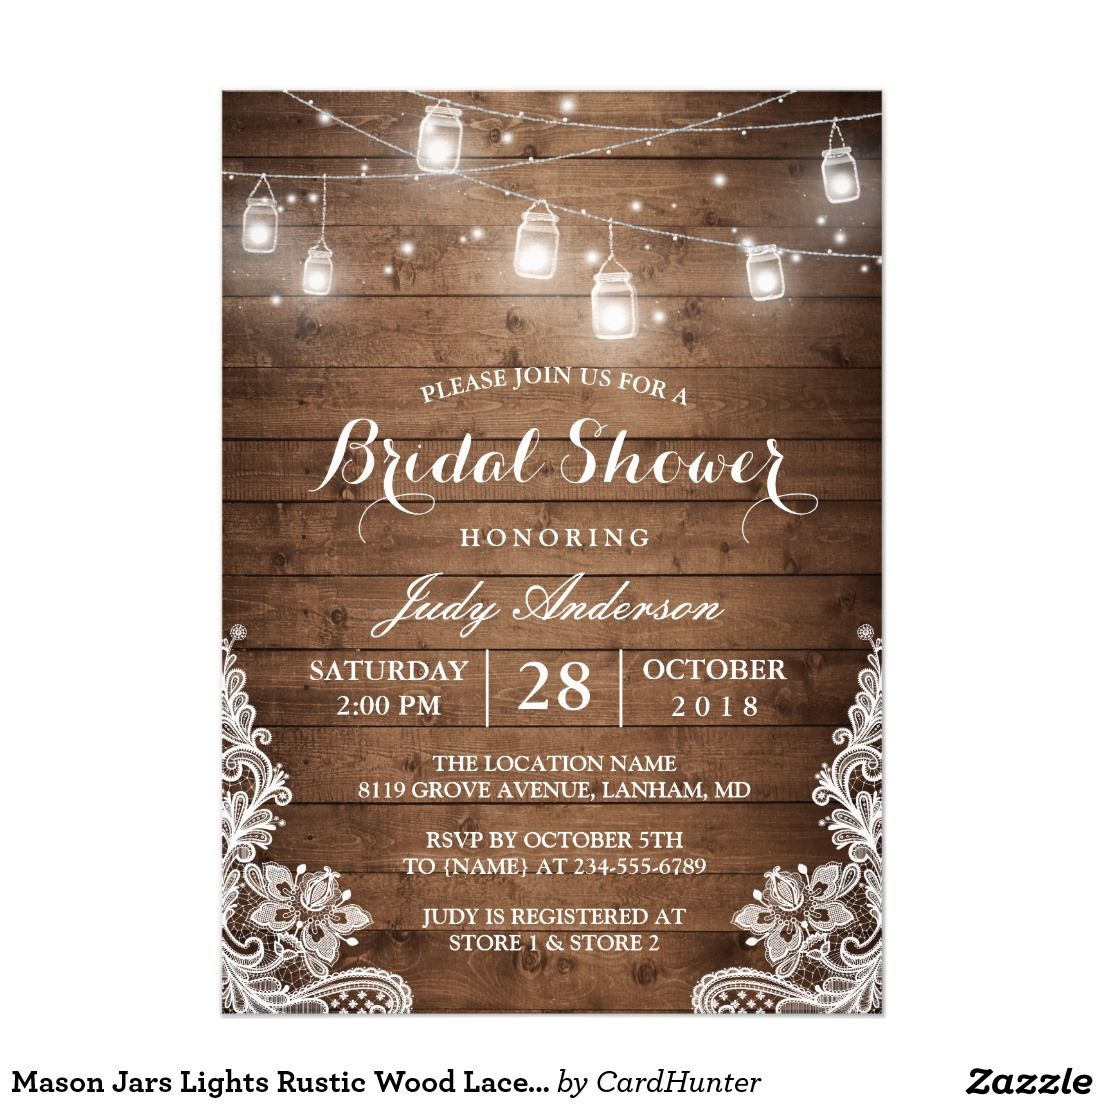 Mason Jars Lights Rustic Wood Lace Bridal Shower Invitation Mason